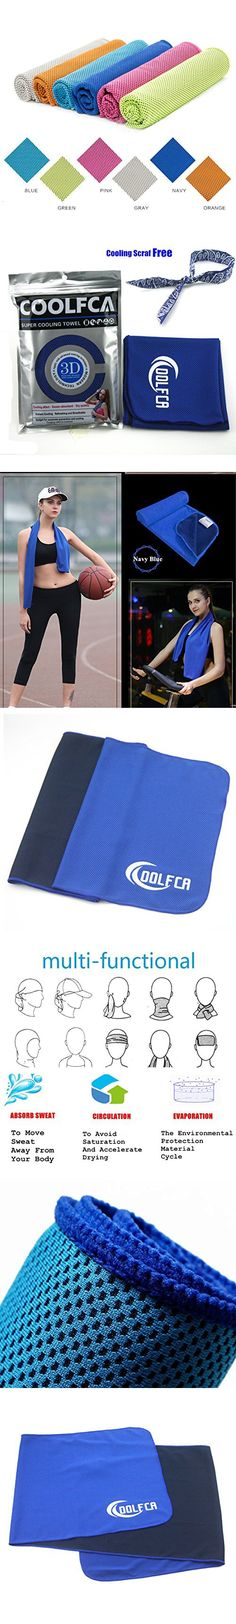 40 12 Snap Cooling Towel Summer Ice Cooling Sweat Sports Towel Stay Cool for BowlingGym, Yoga, Pilates, Travel, Camping Fitness Sports Outdoors And Free Of Charge One Cooling Scarf (blue)